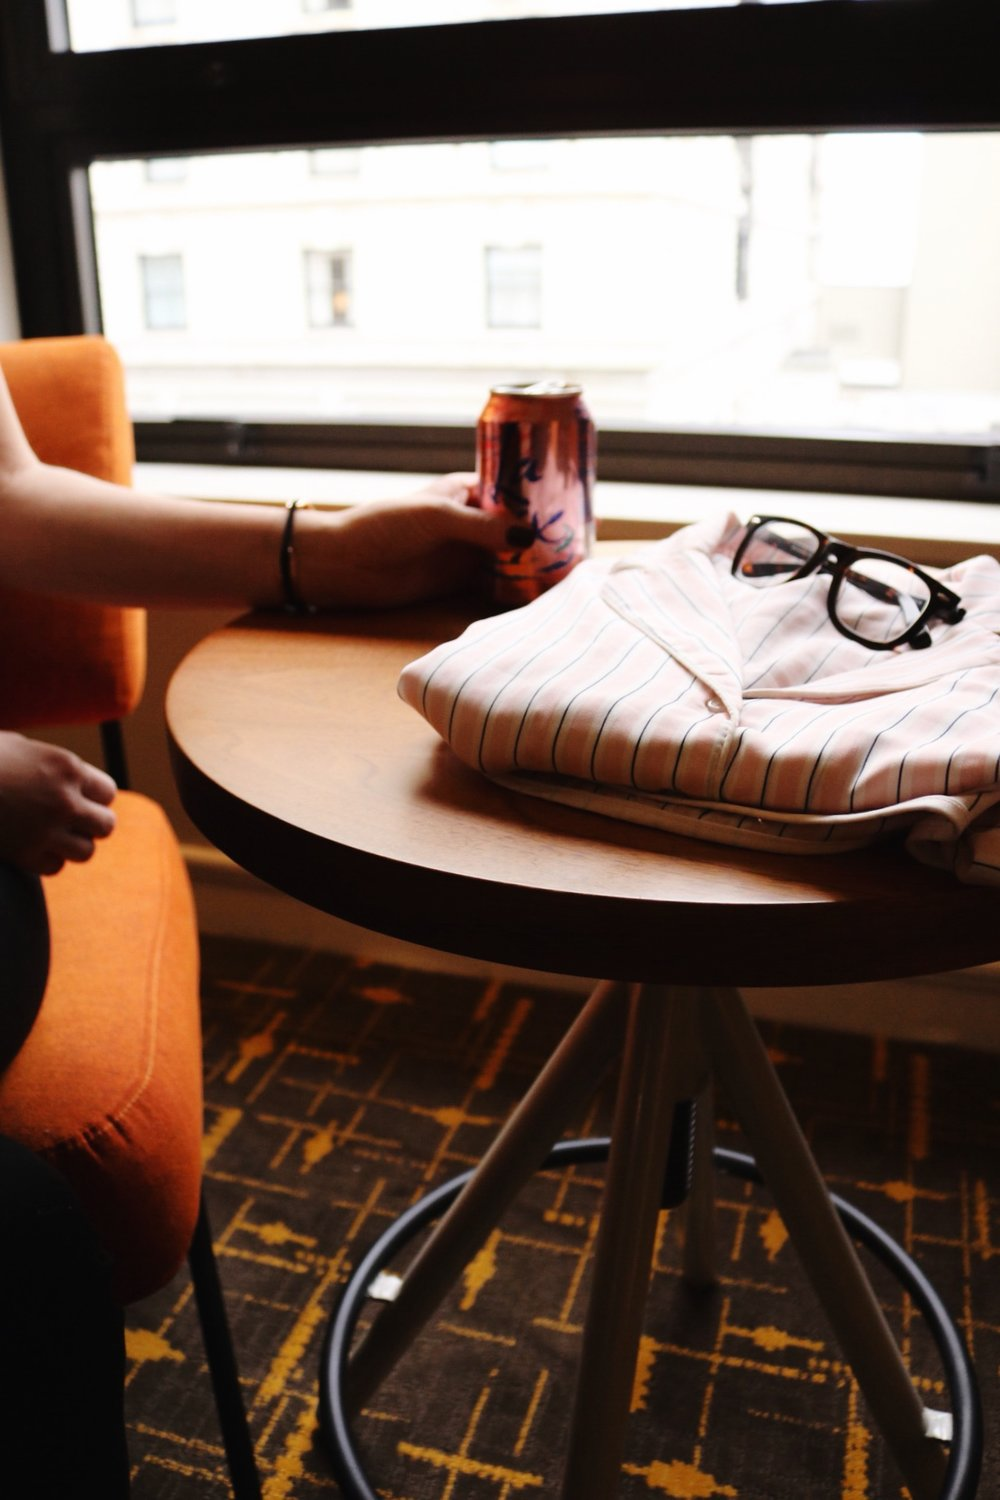 Striped pink pajama set, black rim glasses, La Croix, San Fransisco getaway